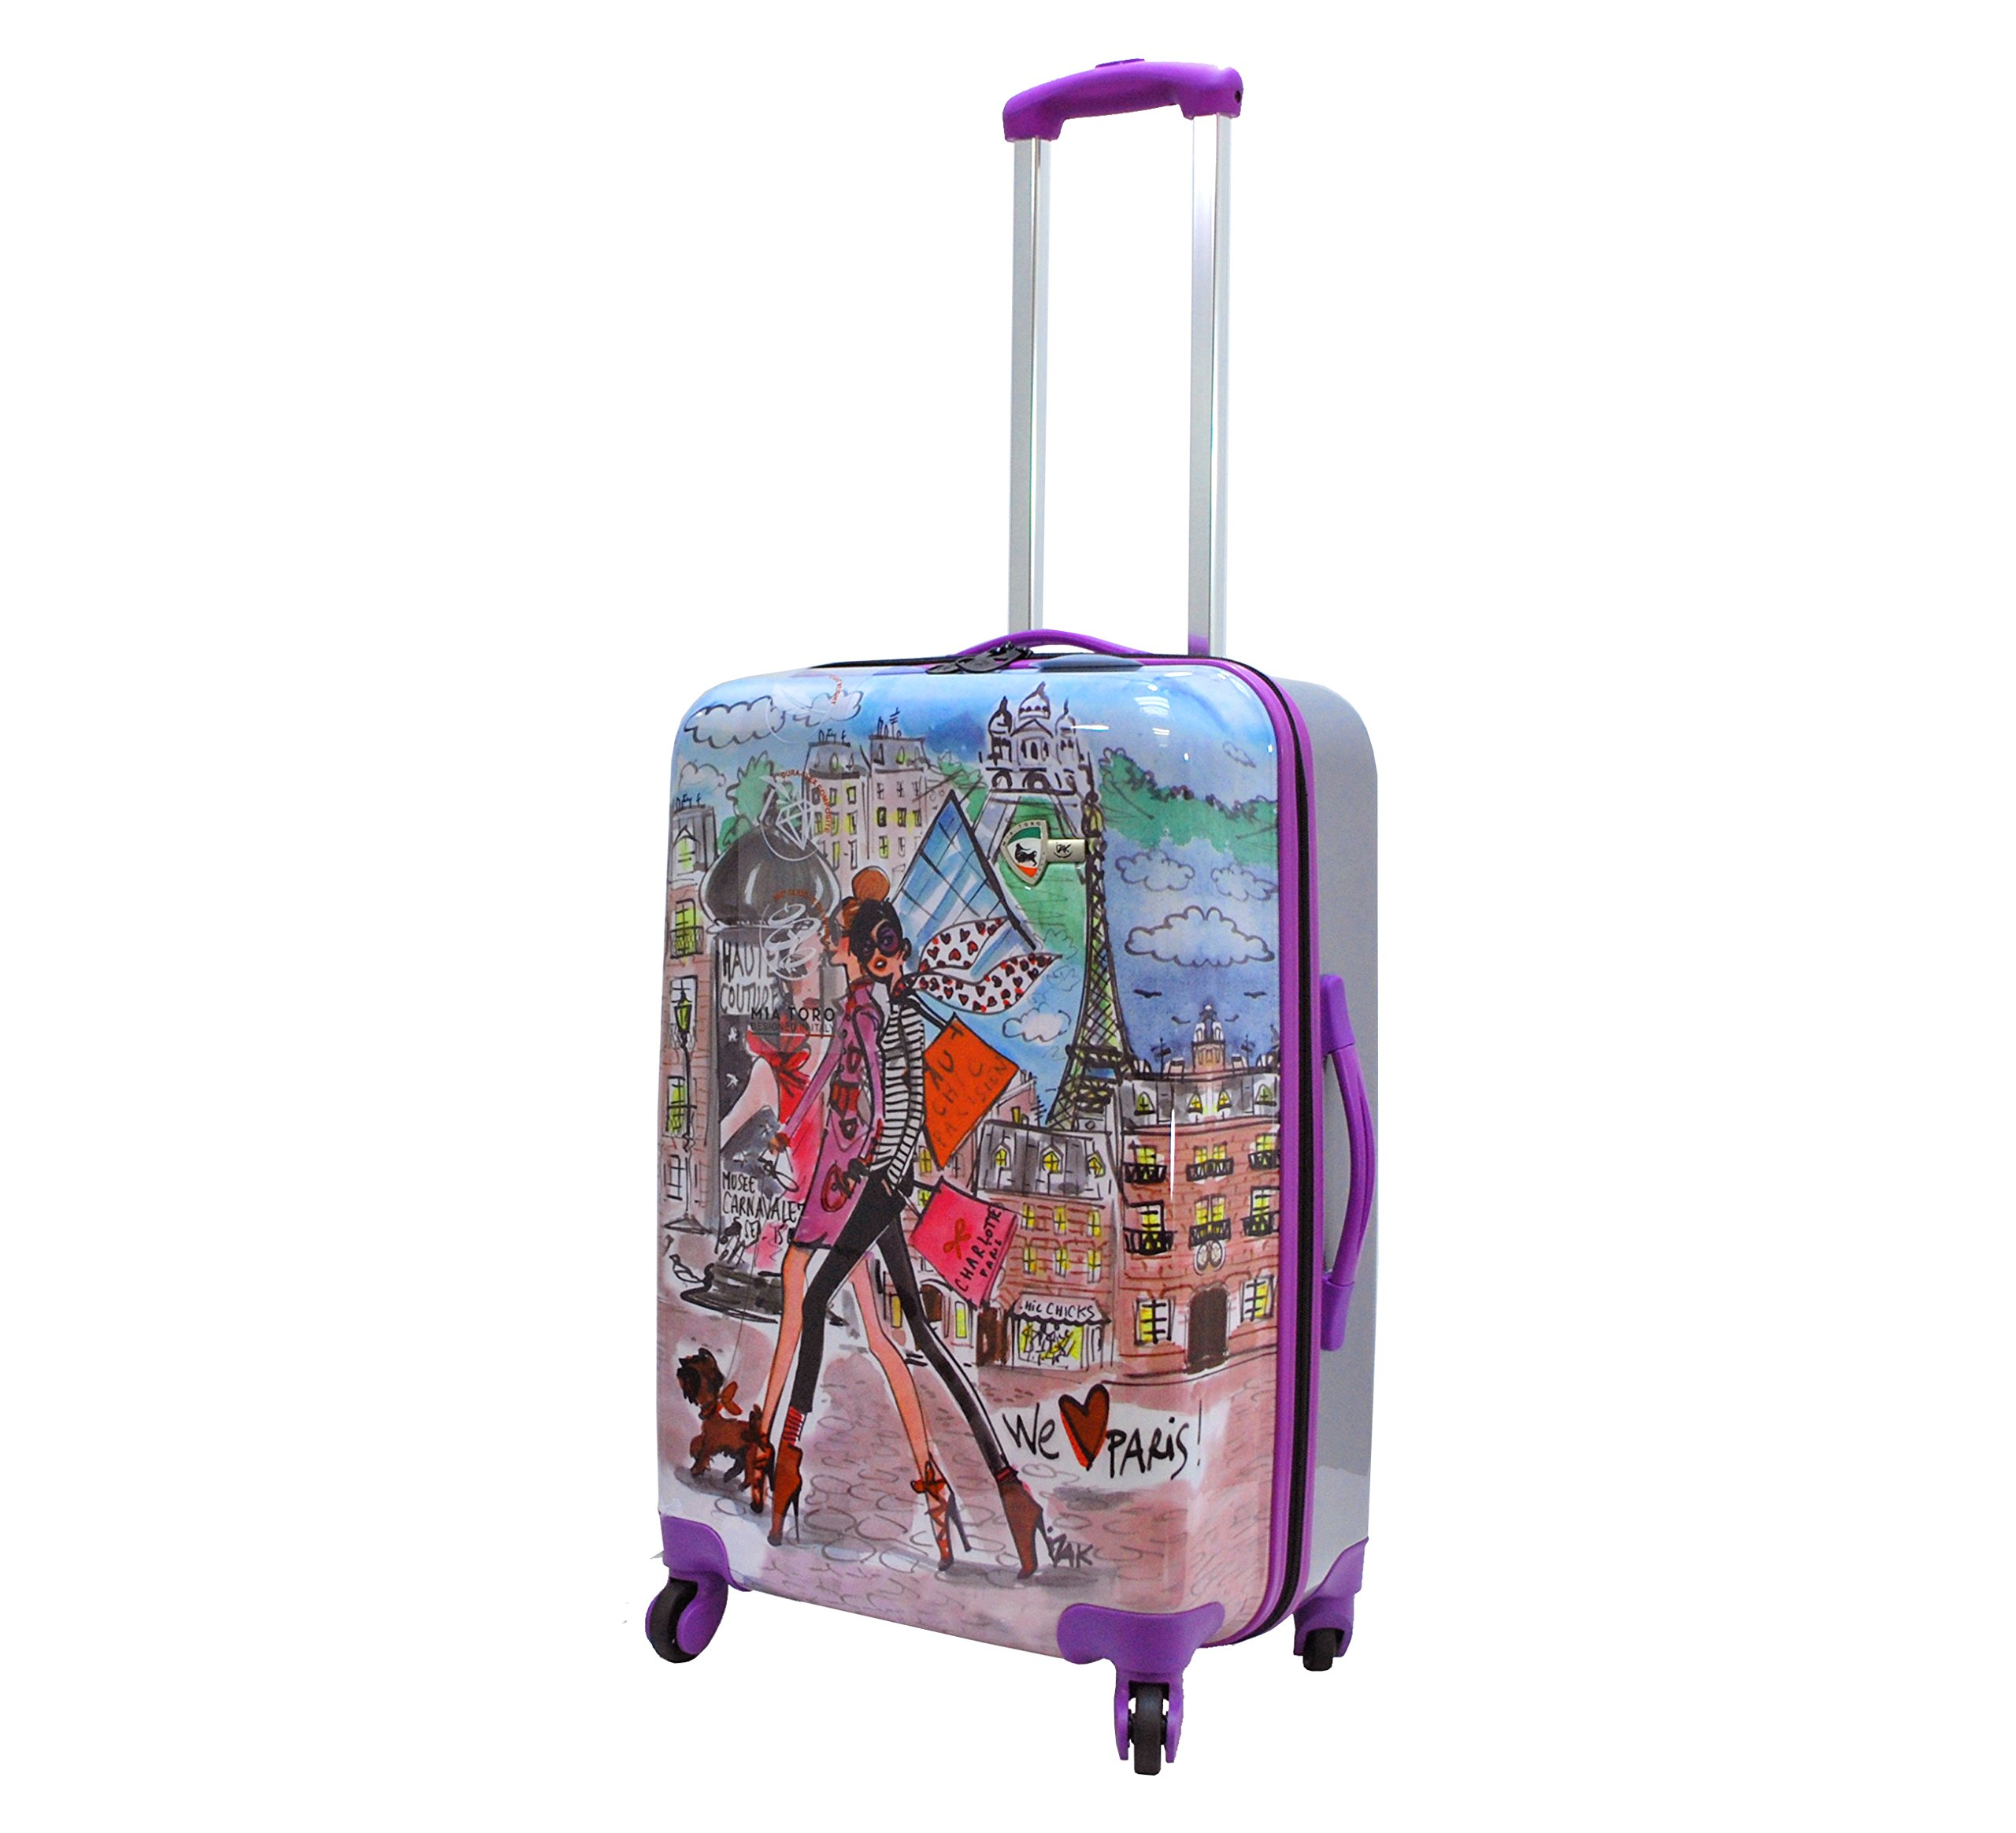 Mia Toro Izak-Paris Fashion Hard-side Spinner Luggage 3PC/Set with 10-Year Warranty--BEST GIFT for Christmas!!!!! by Mia Toro (Image #2)